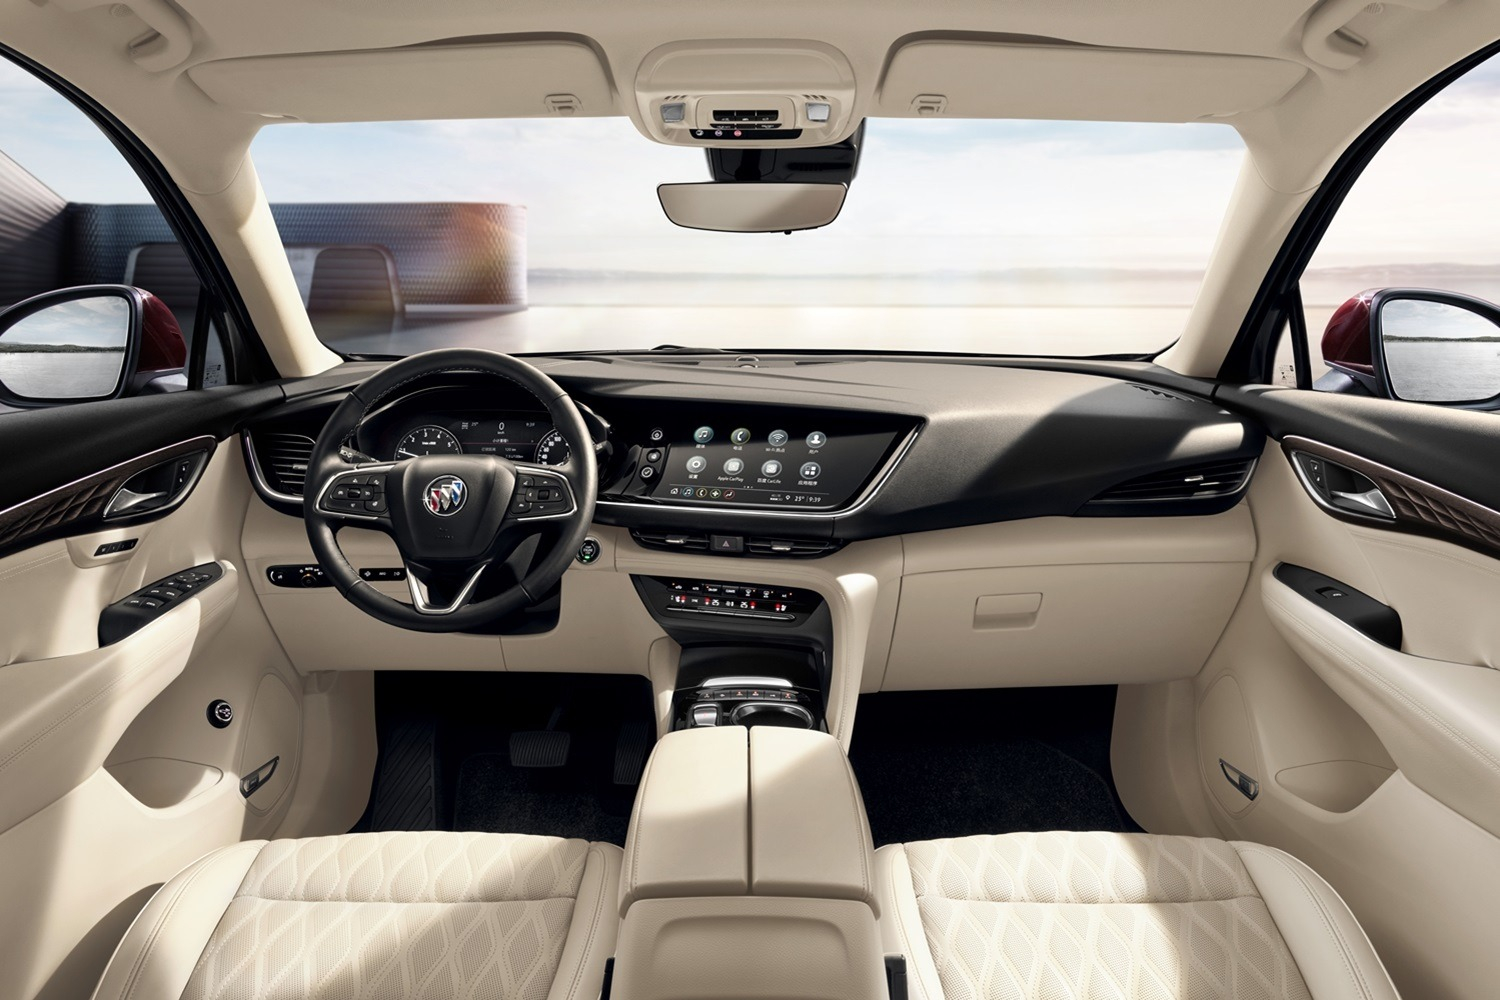 2021 Buick Envision Interior Revealed In Brand New Photos New 2022 Buick Lucerne Interior, Problems, Review